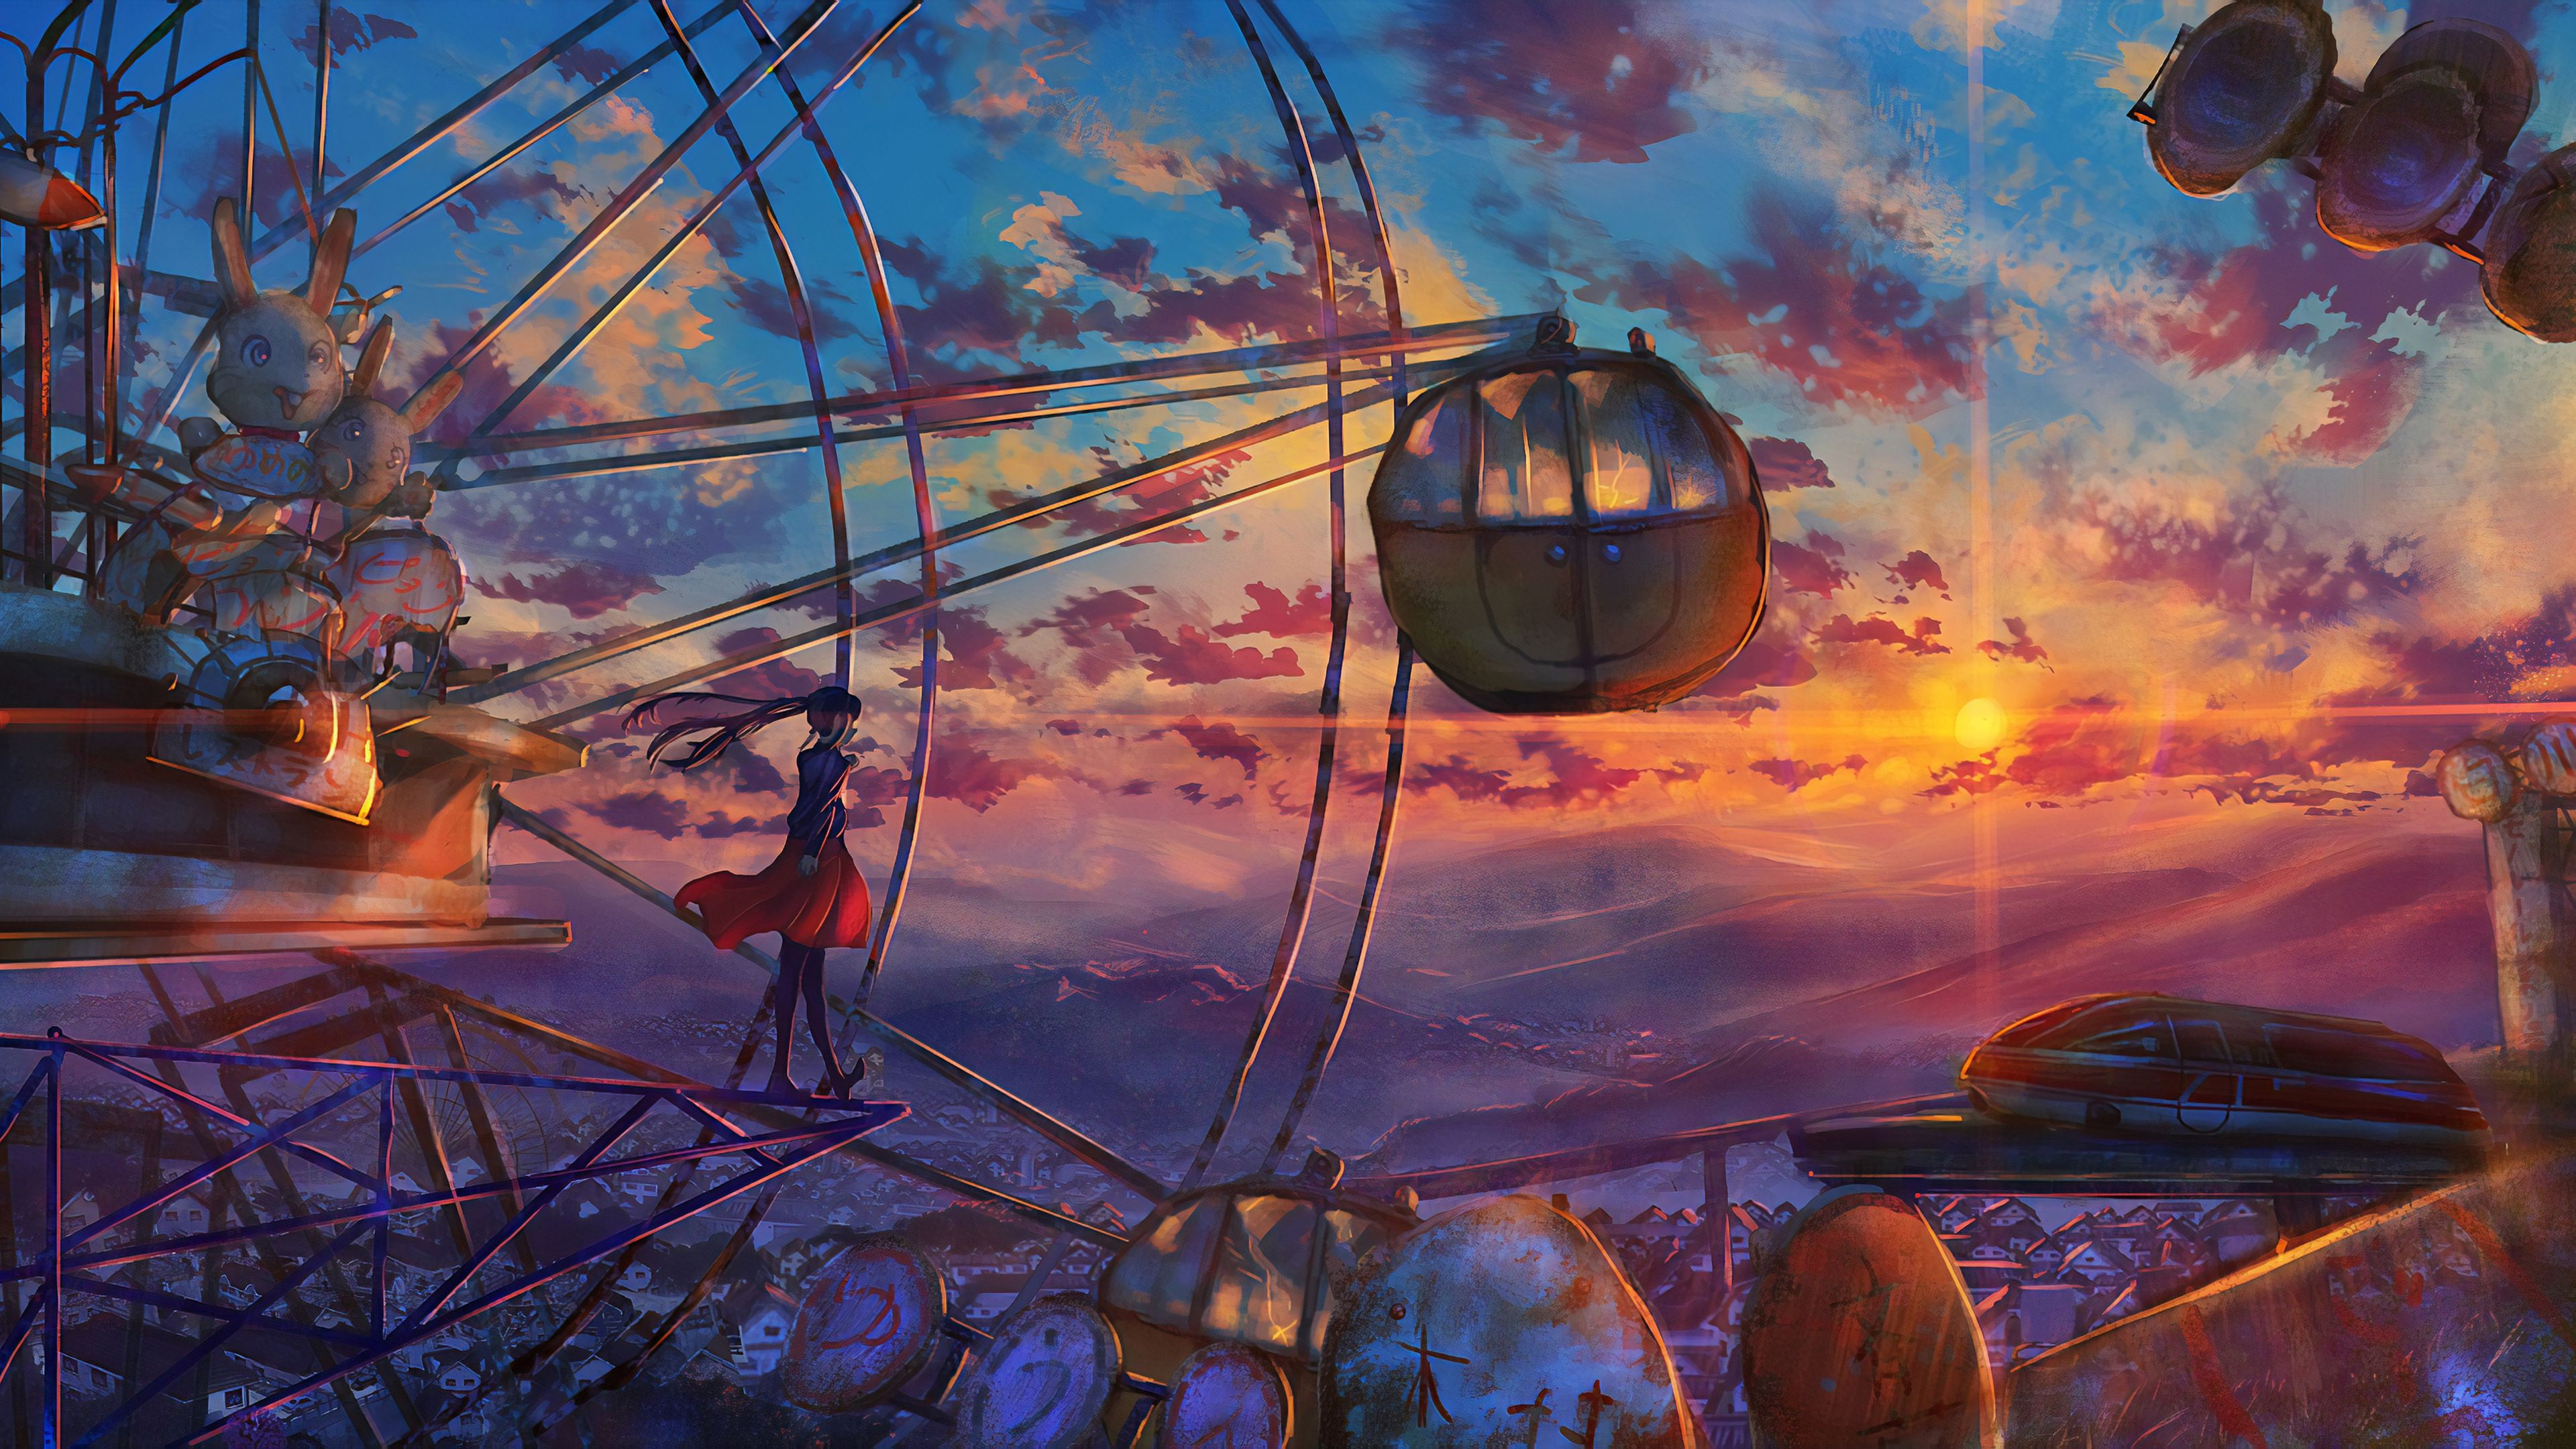 Anime Ferris Wheel Painting Hd Wallpapers Ferris Wheel Wallpapers Digital Art Wallpapers Artwork Wal In 2020 Anime Scenery Wallpaper Anime Scenery Scenery Wallpaper